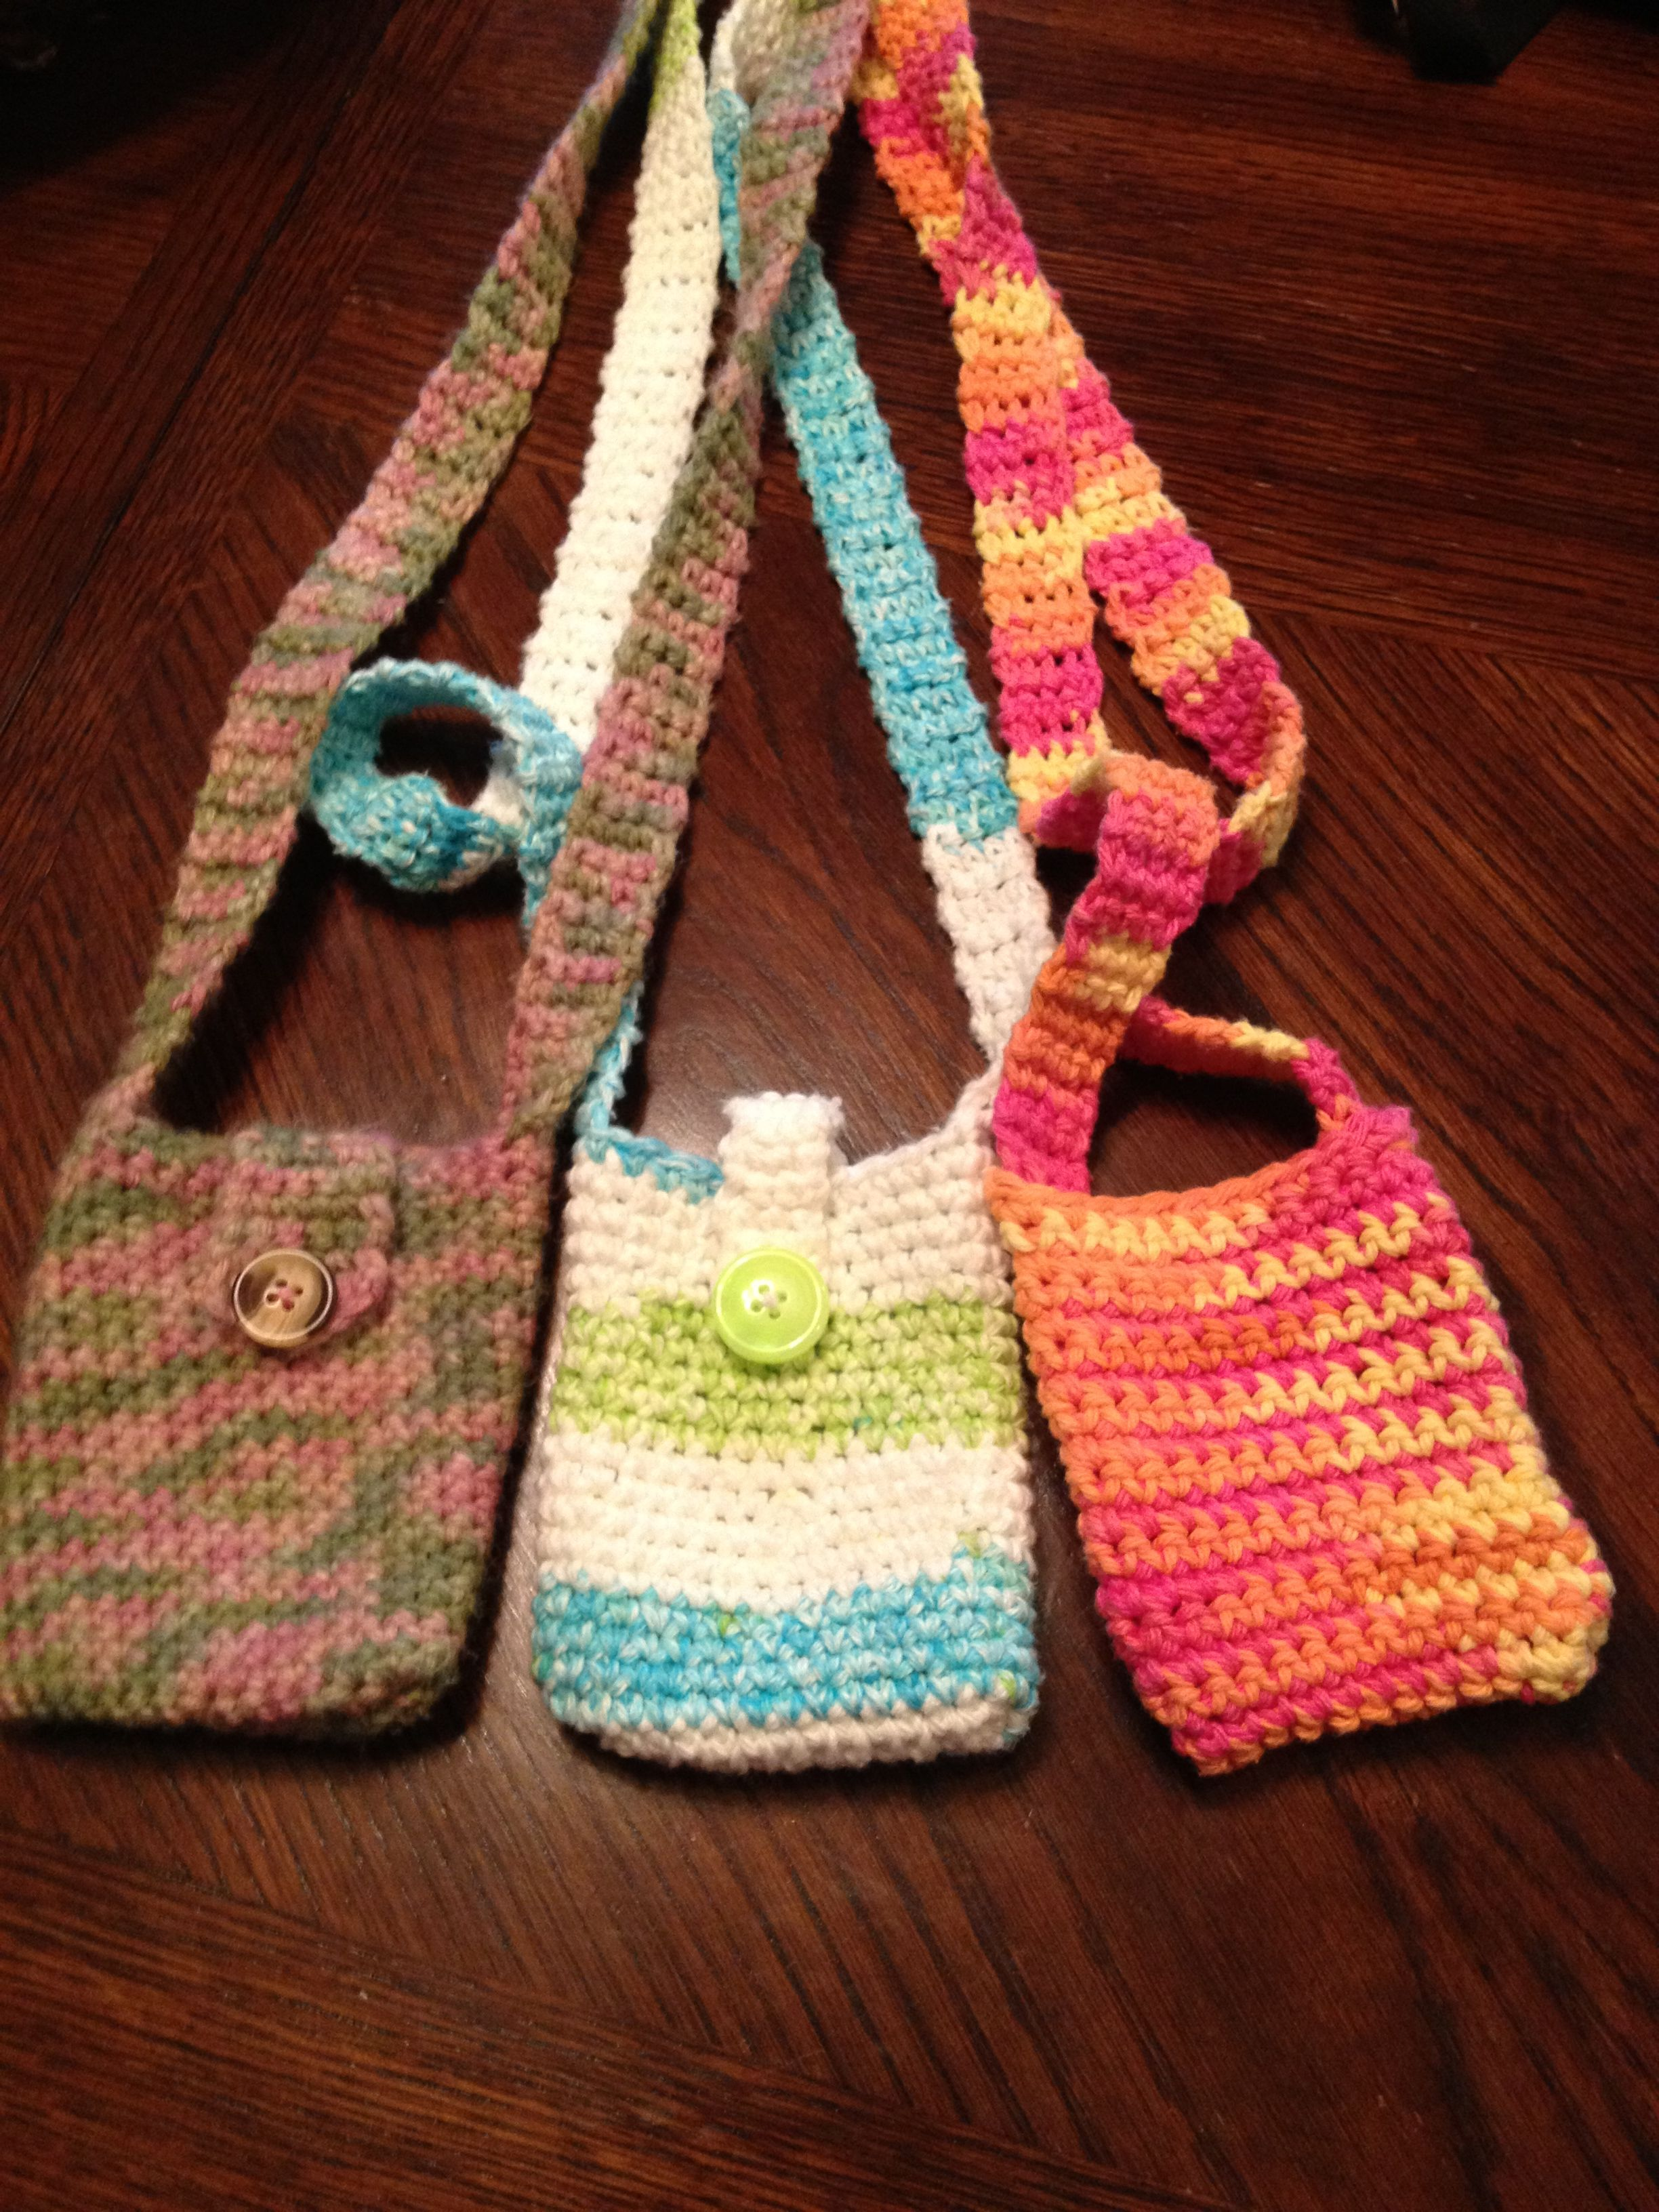 Crochet Cell Phone Purse : Crochet cell phone bag Crochet Pinterest